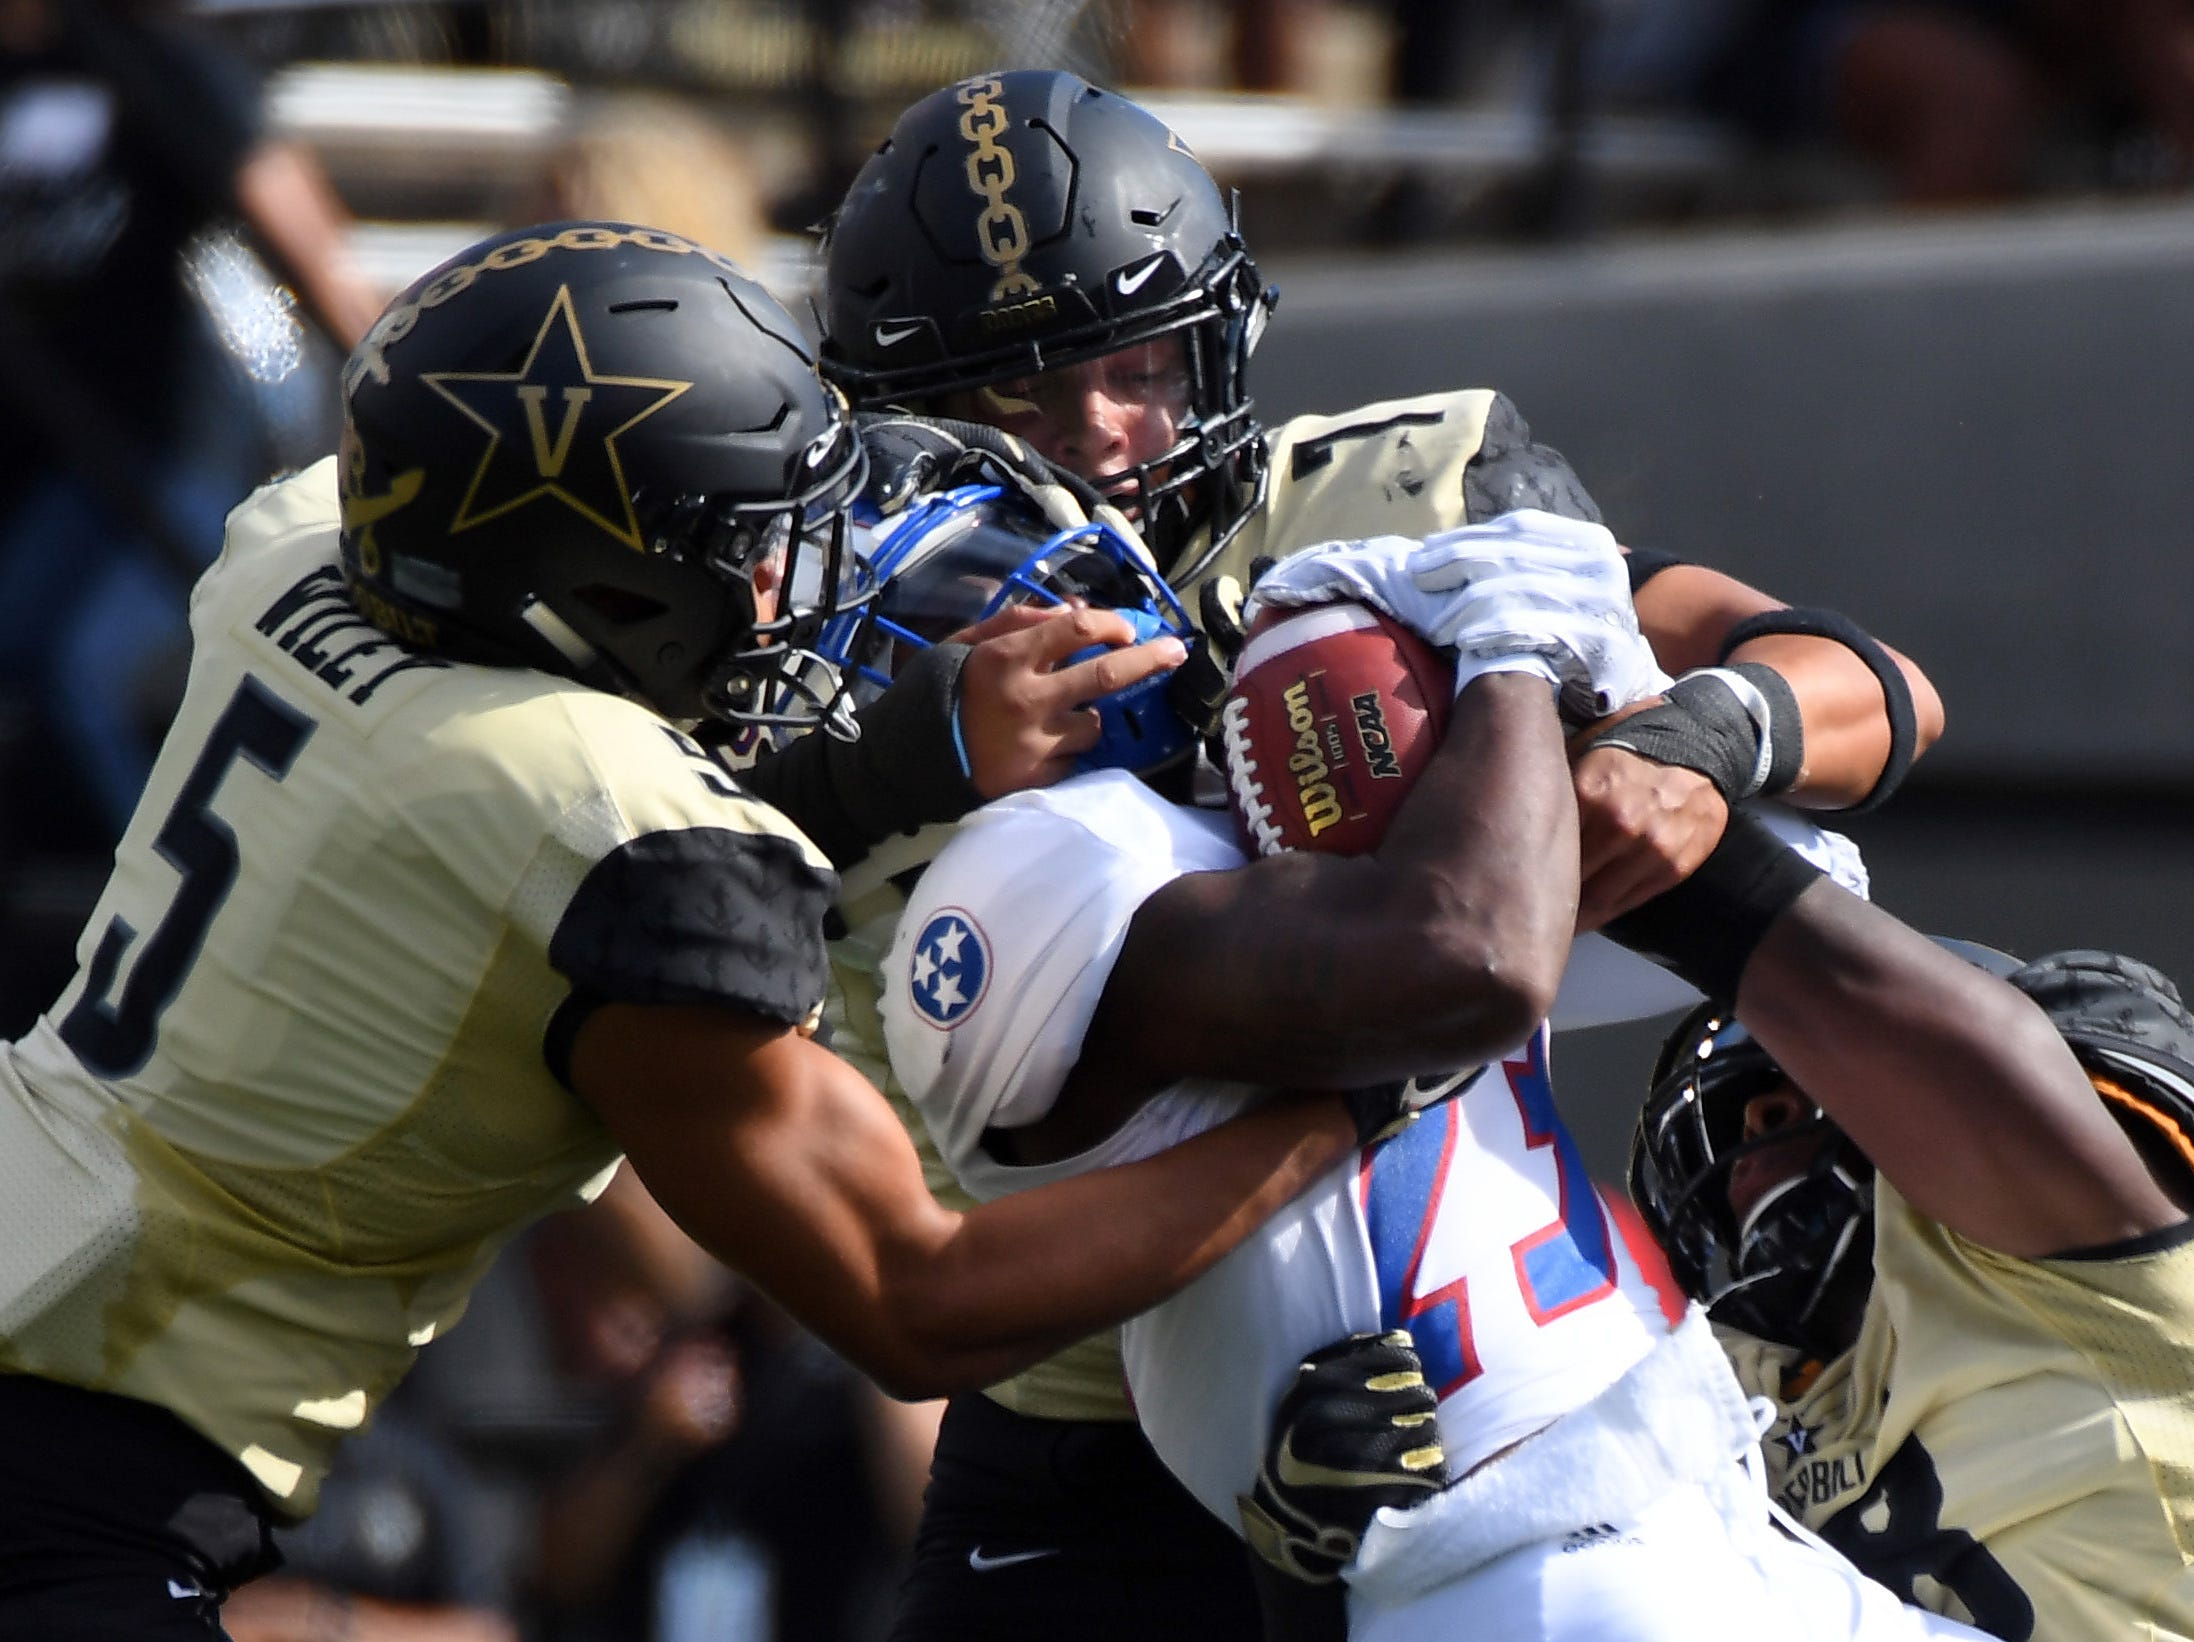 Tennessee State Tigers running back Te'kendrick Roberson (23) is tackled for a loss by a group of Vanderbilt Commodores defenders during the first half at Vanderbilt Stadium.